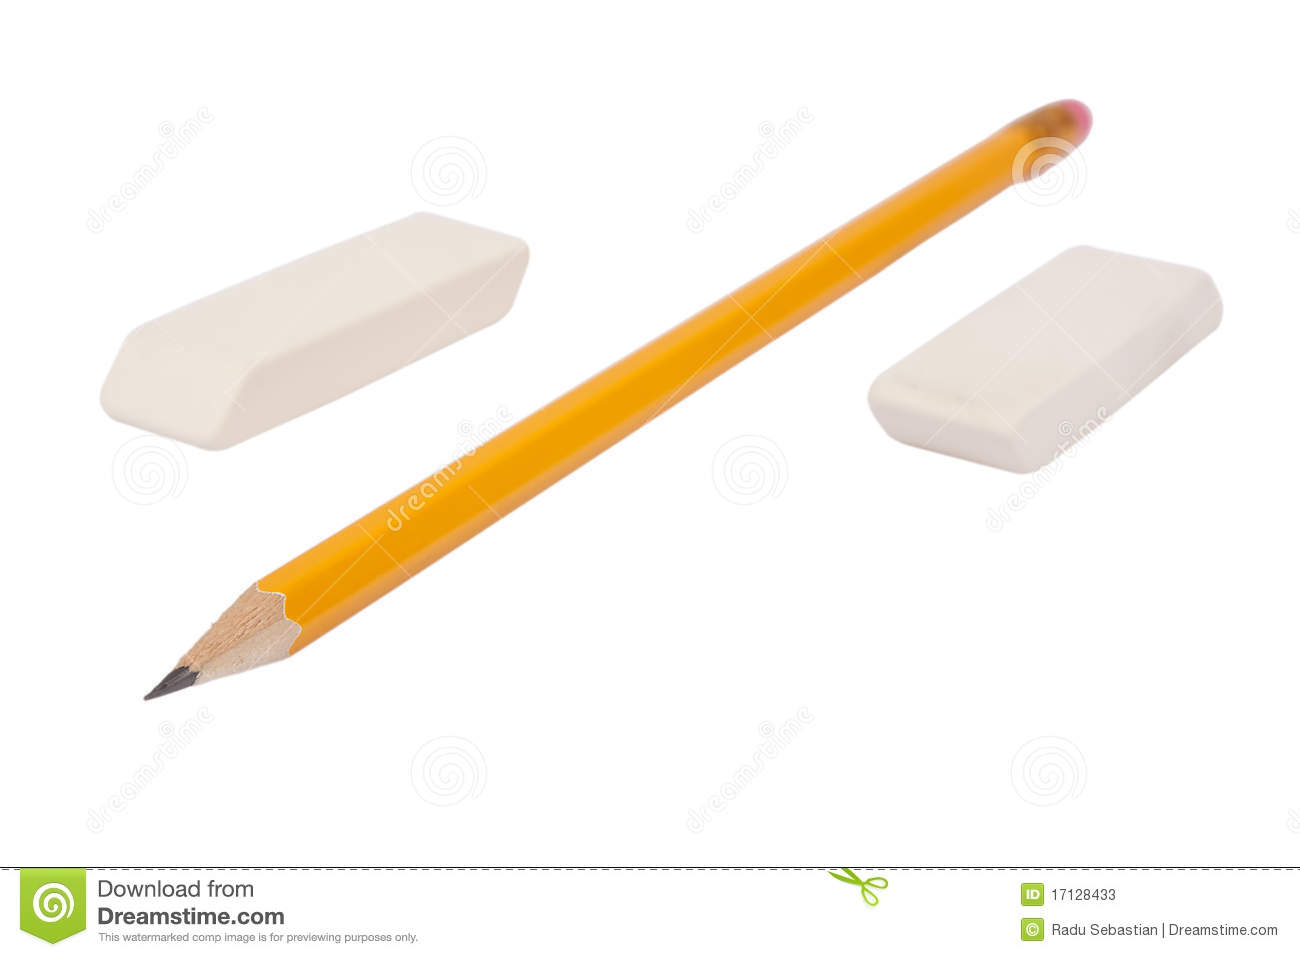 One pencil and two erasers isolated on white background.